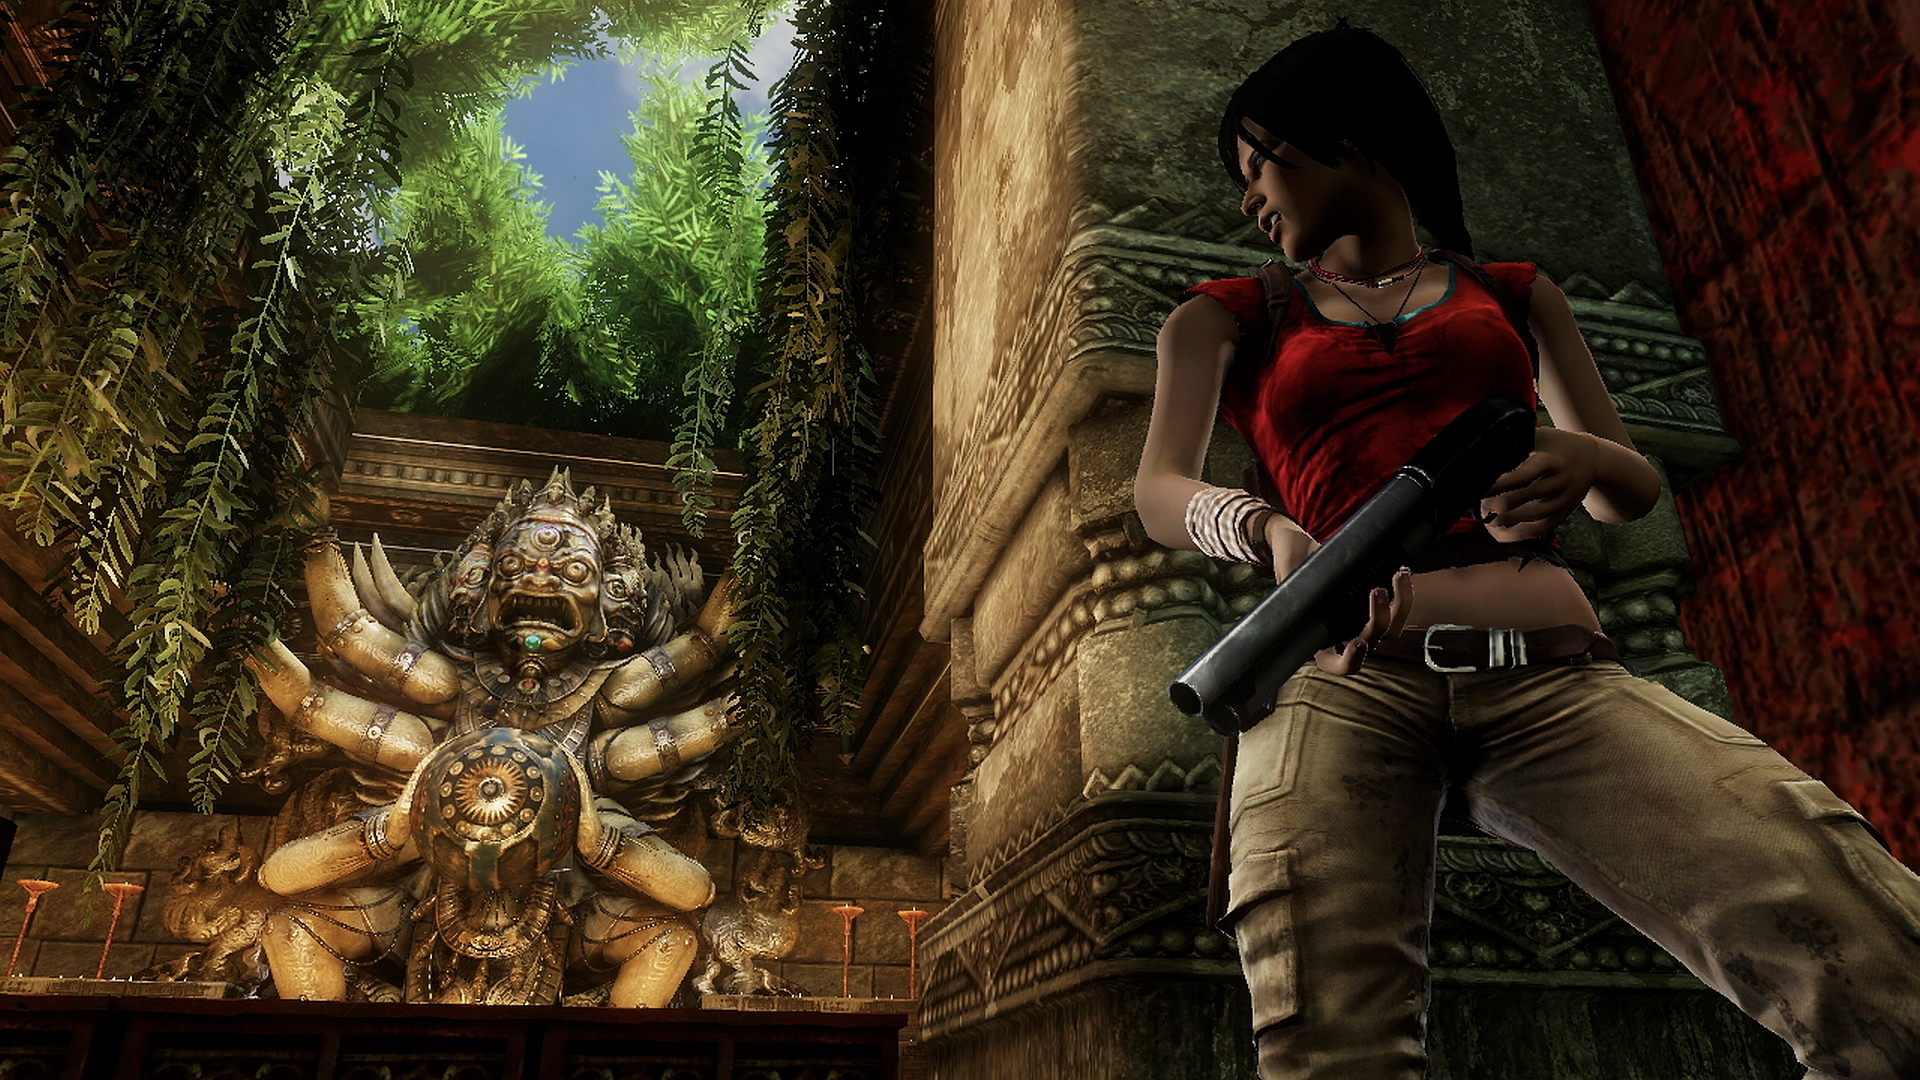 uncharted chloe 1 2 3 gun temple screenshot woman